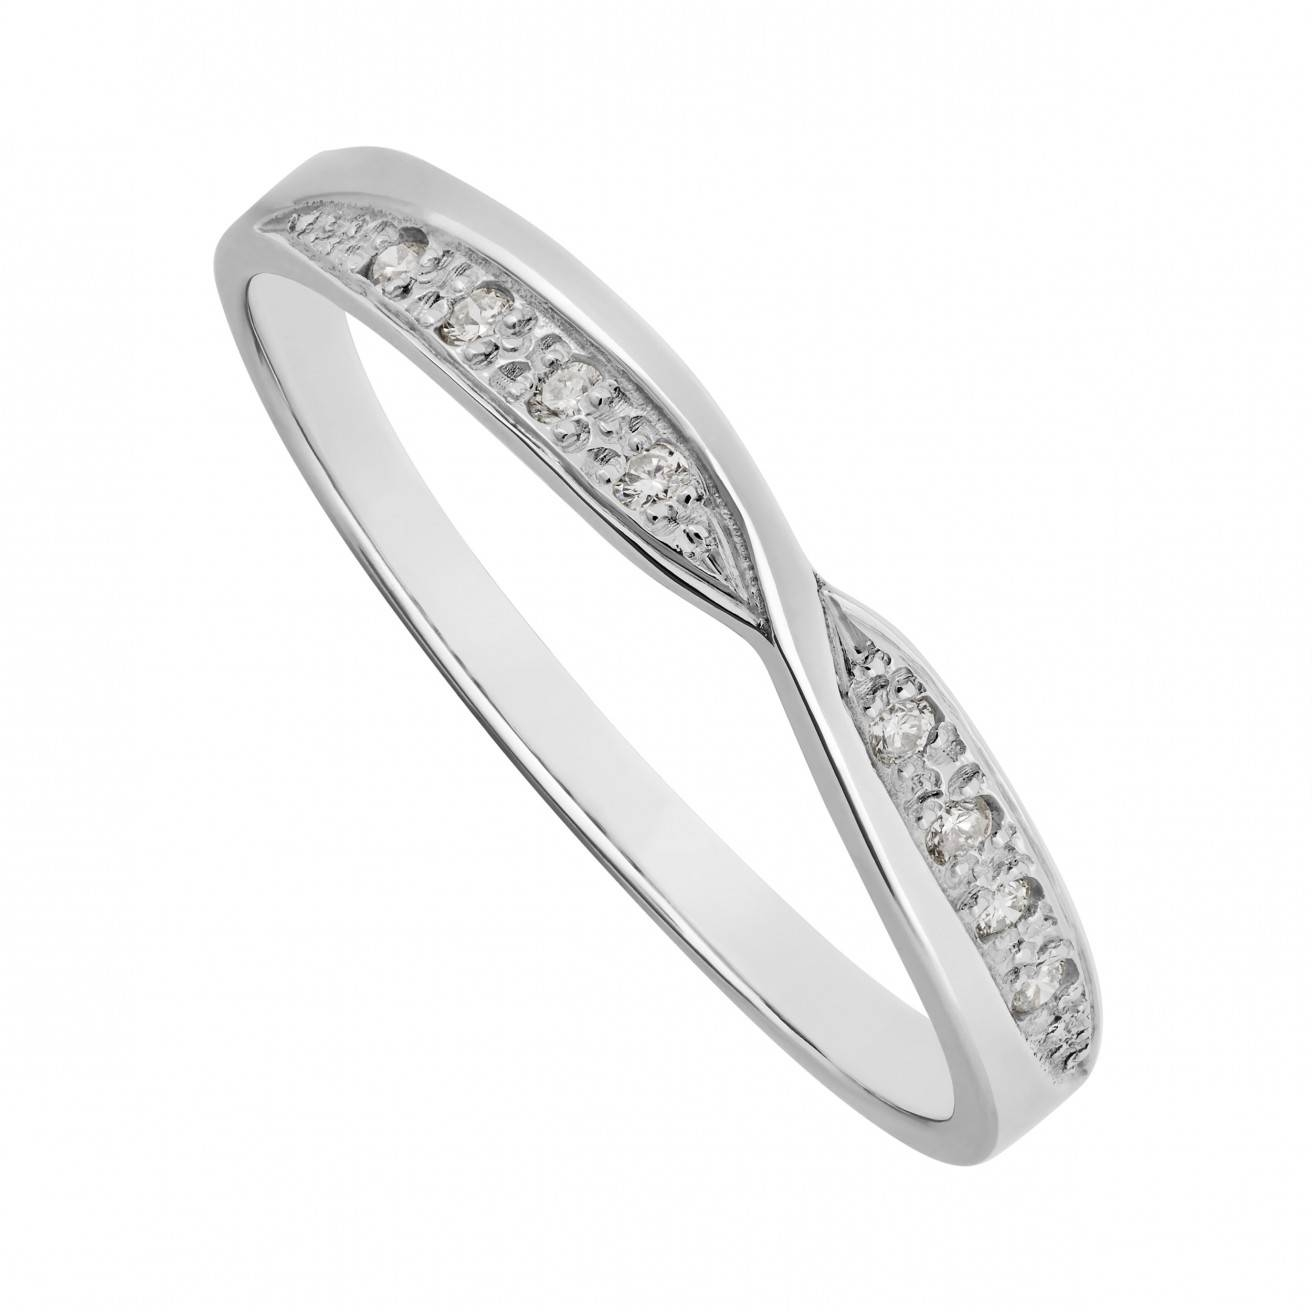 Buy A Diamond Wedding Ring Online – Fraser Hart With Regard To Diamonds Wedding Rings (View 6 of 15)